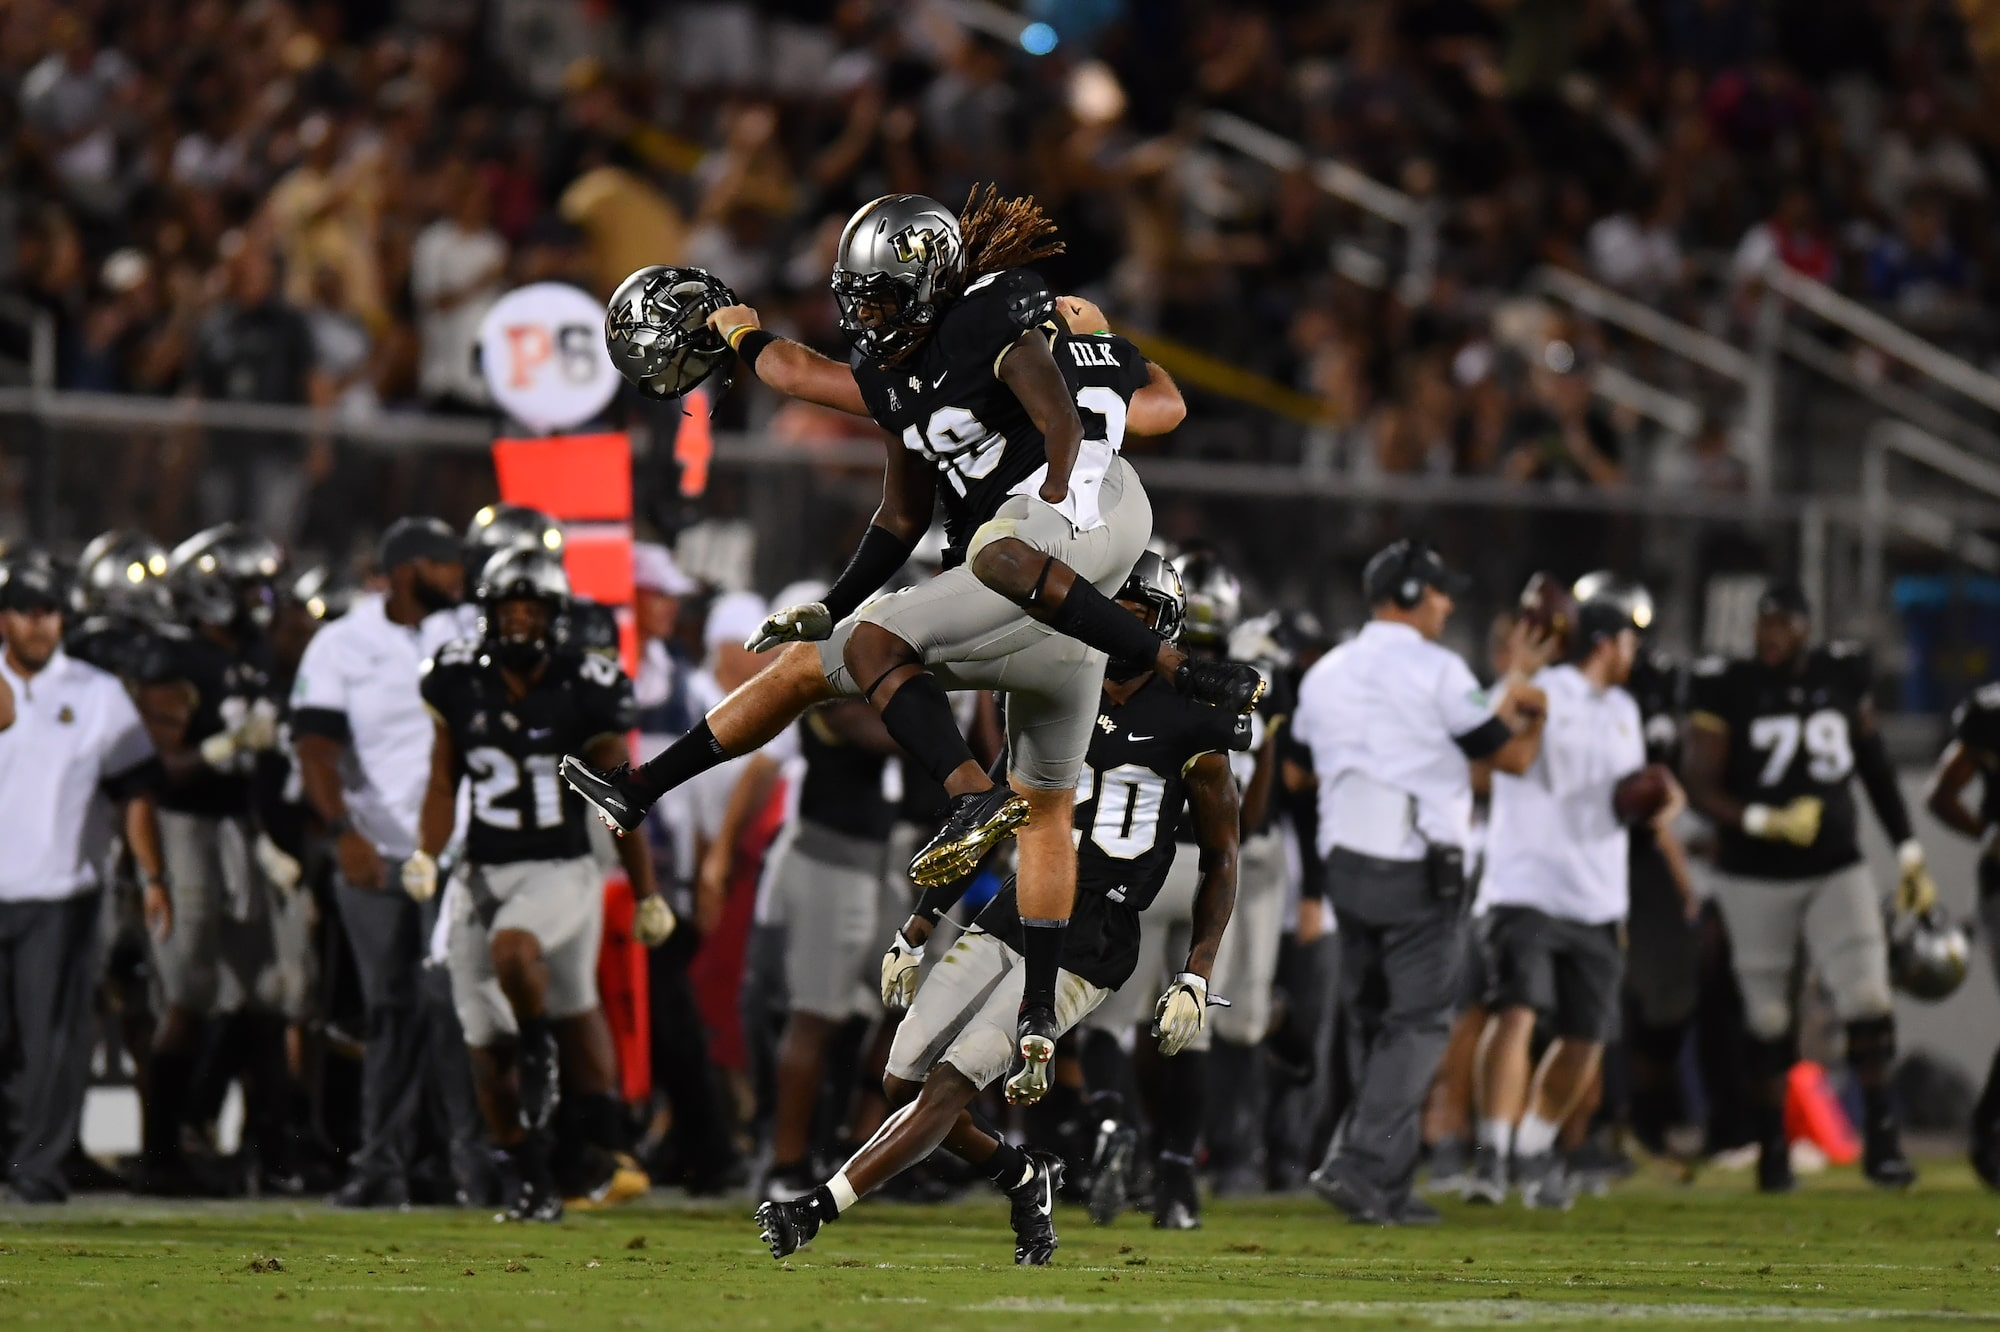 Shaquem Griffin jumping up after a victory at UCF